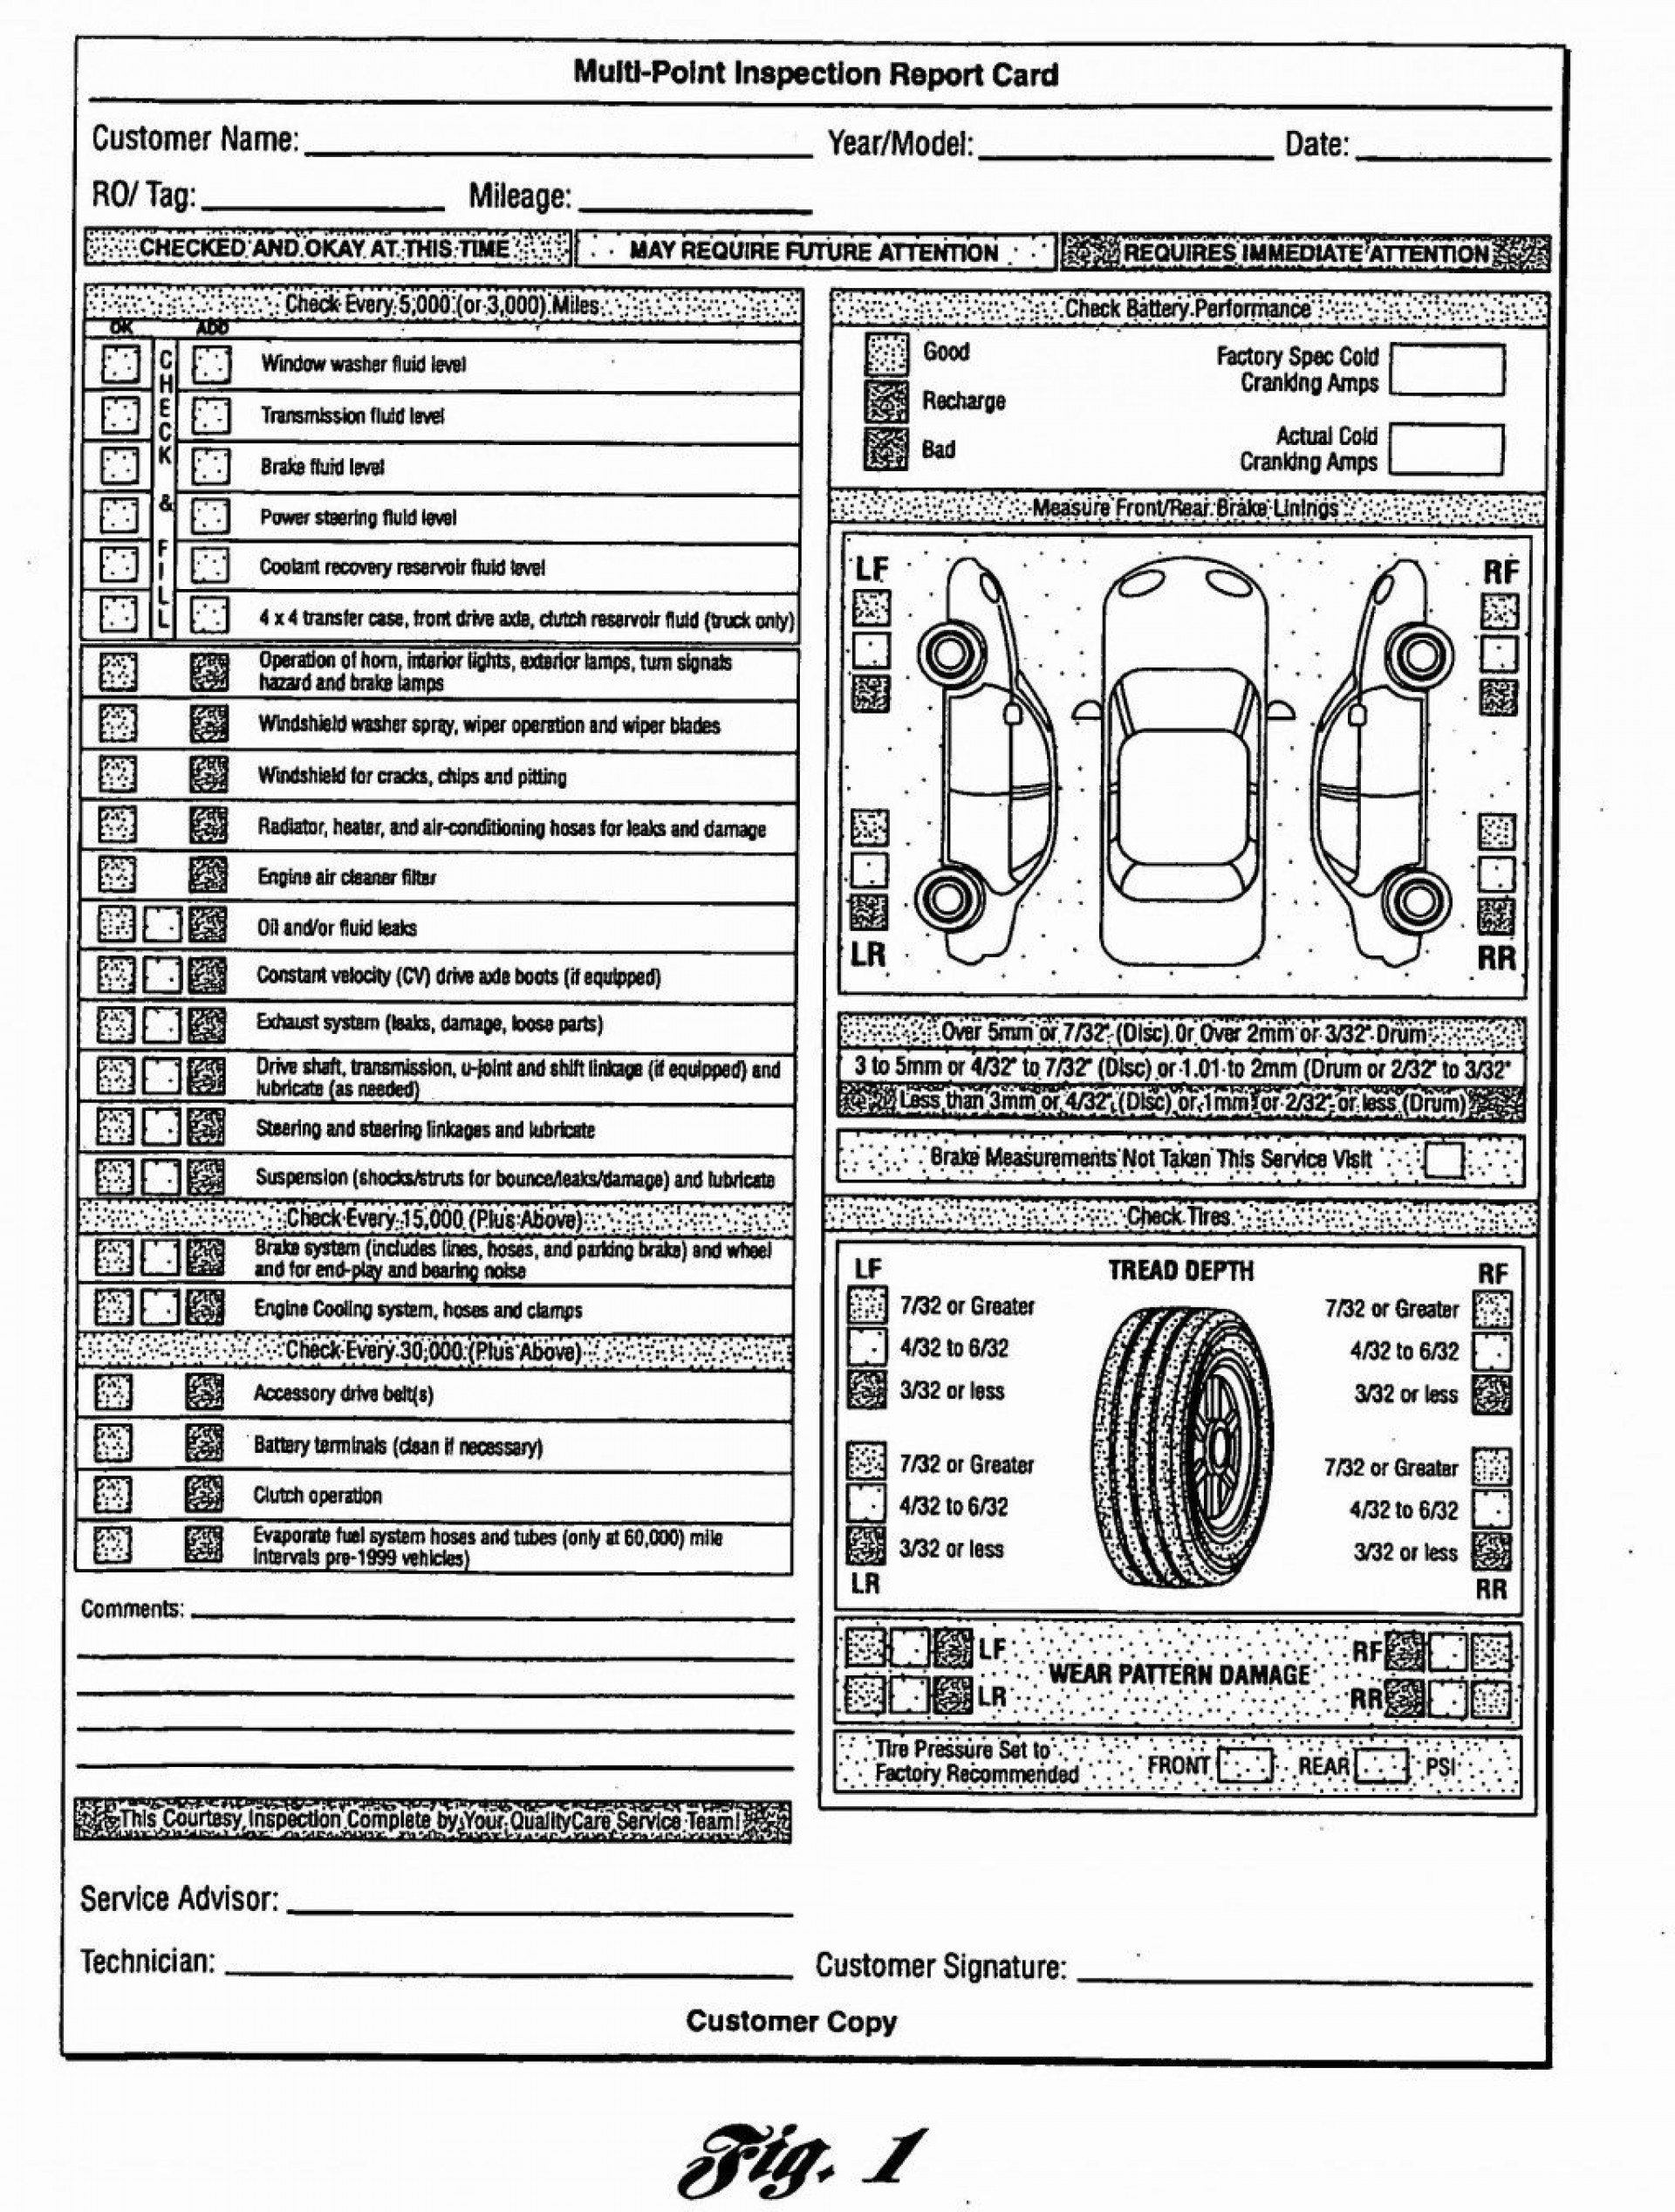 001 Fascinating Vehicle Inspection Checklist Template High Resolution  Safety Ontario Motor Kenya Form1920